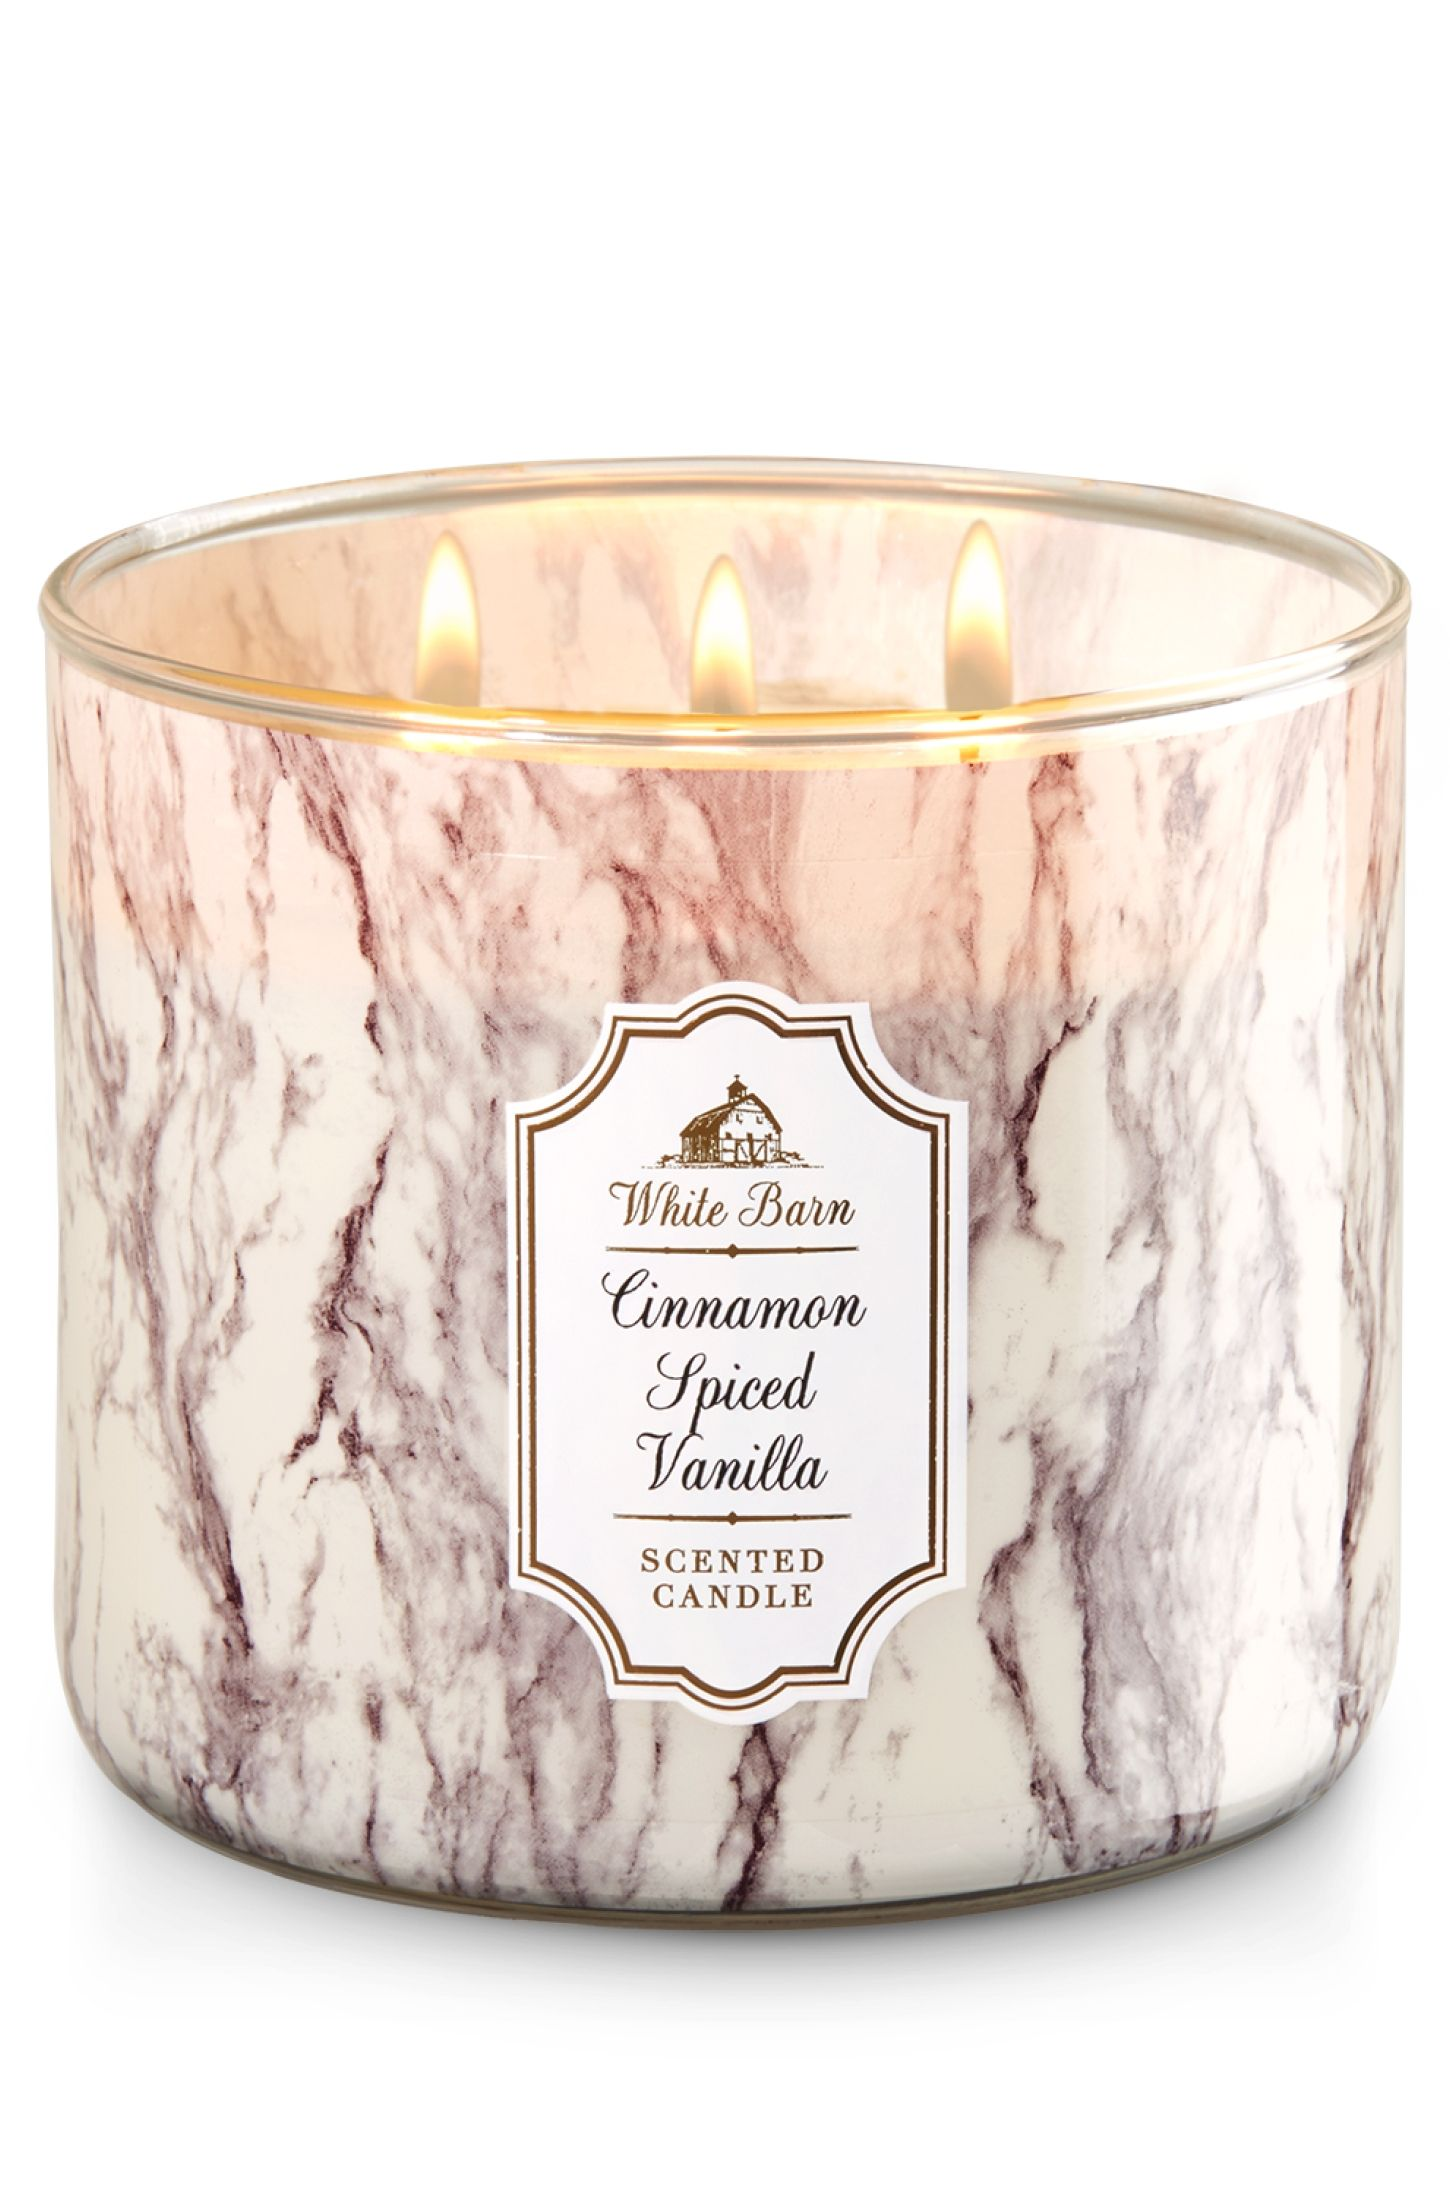 cinnamon spice vanilla 3 wick candle home fragrance 1037181 bath body works shopping. Black Bedroom Furniture Sets. Home Design Ideas